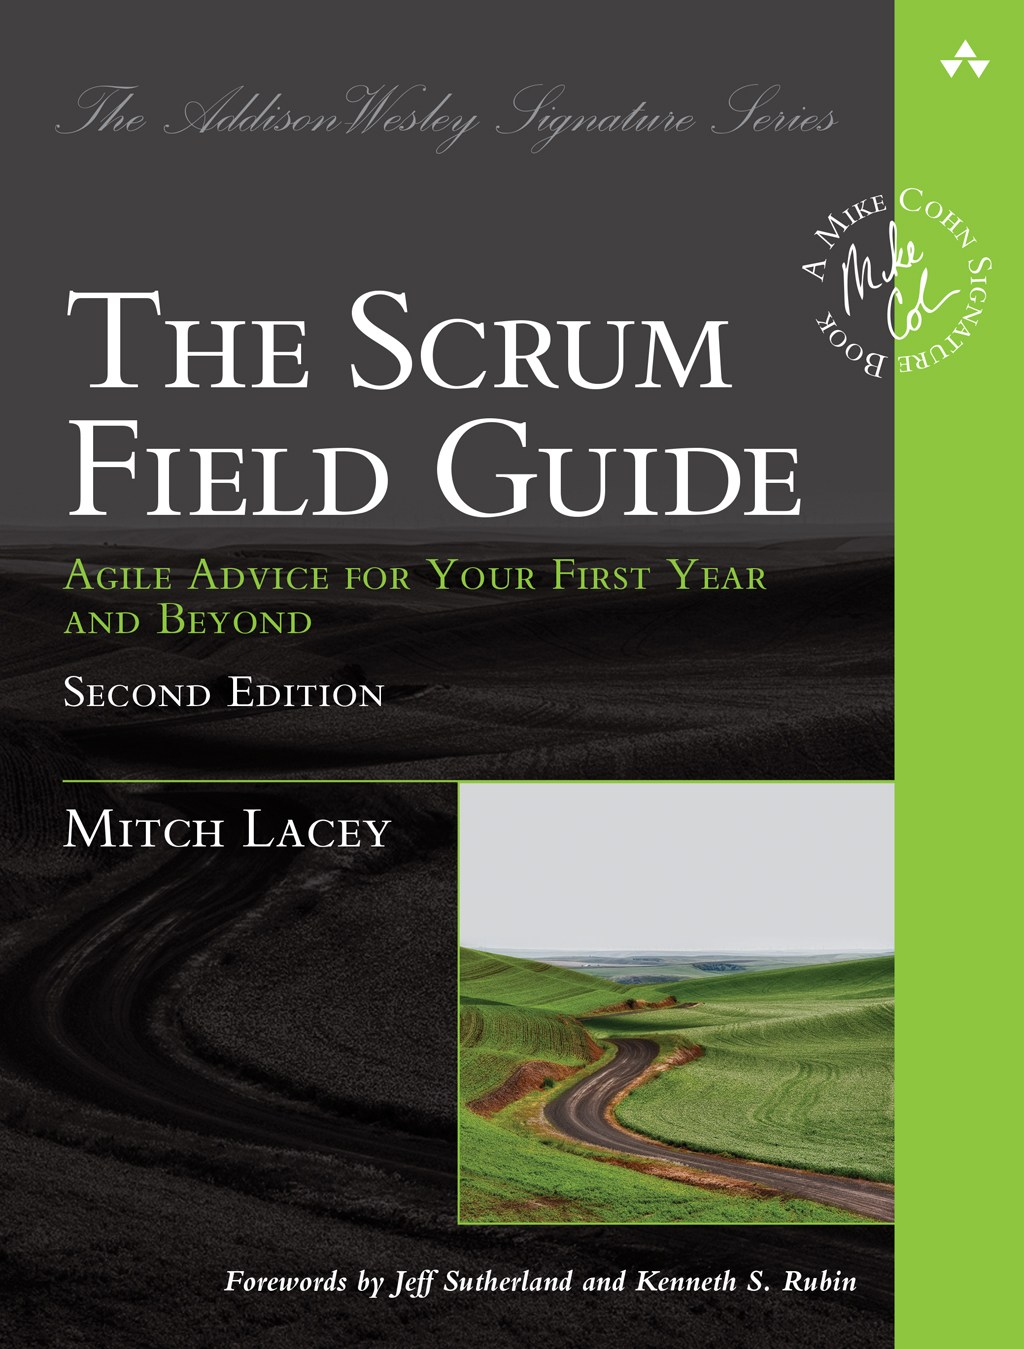 The Scrum Field Guide: Agile Advice for Your First Year and Beyond, 2nd Edition